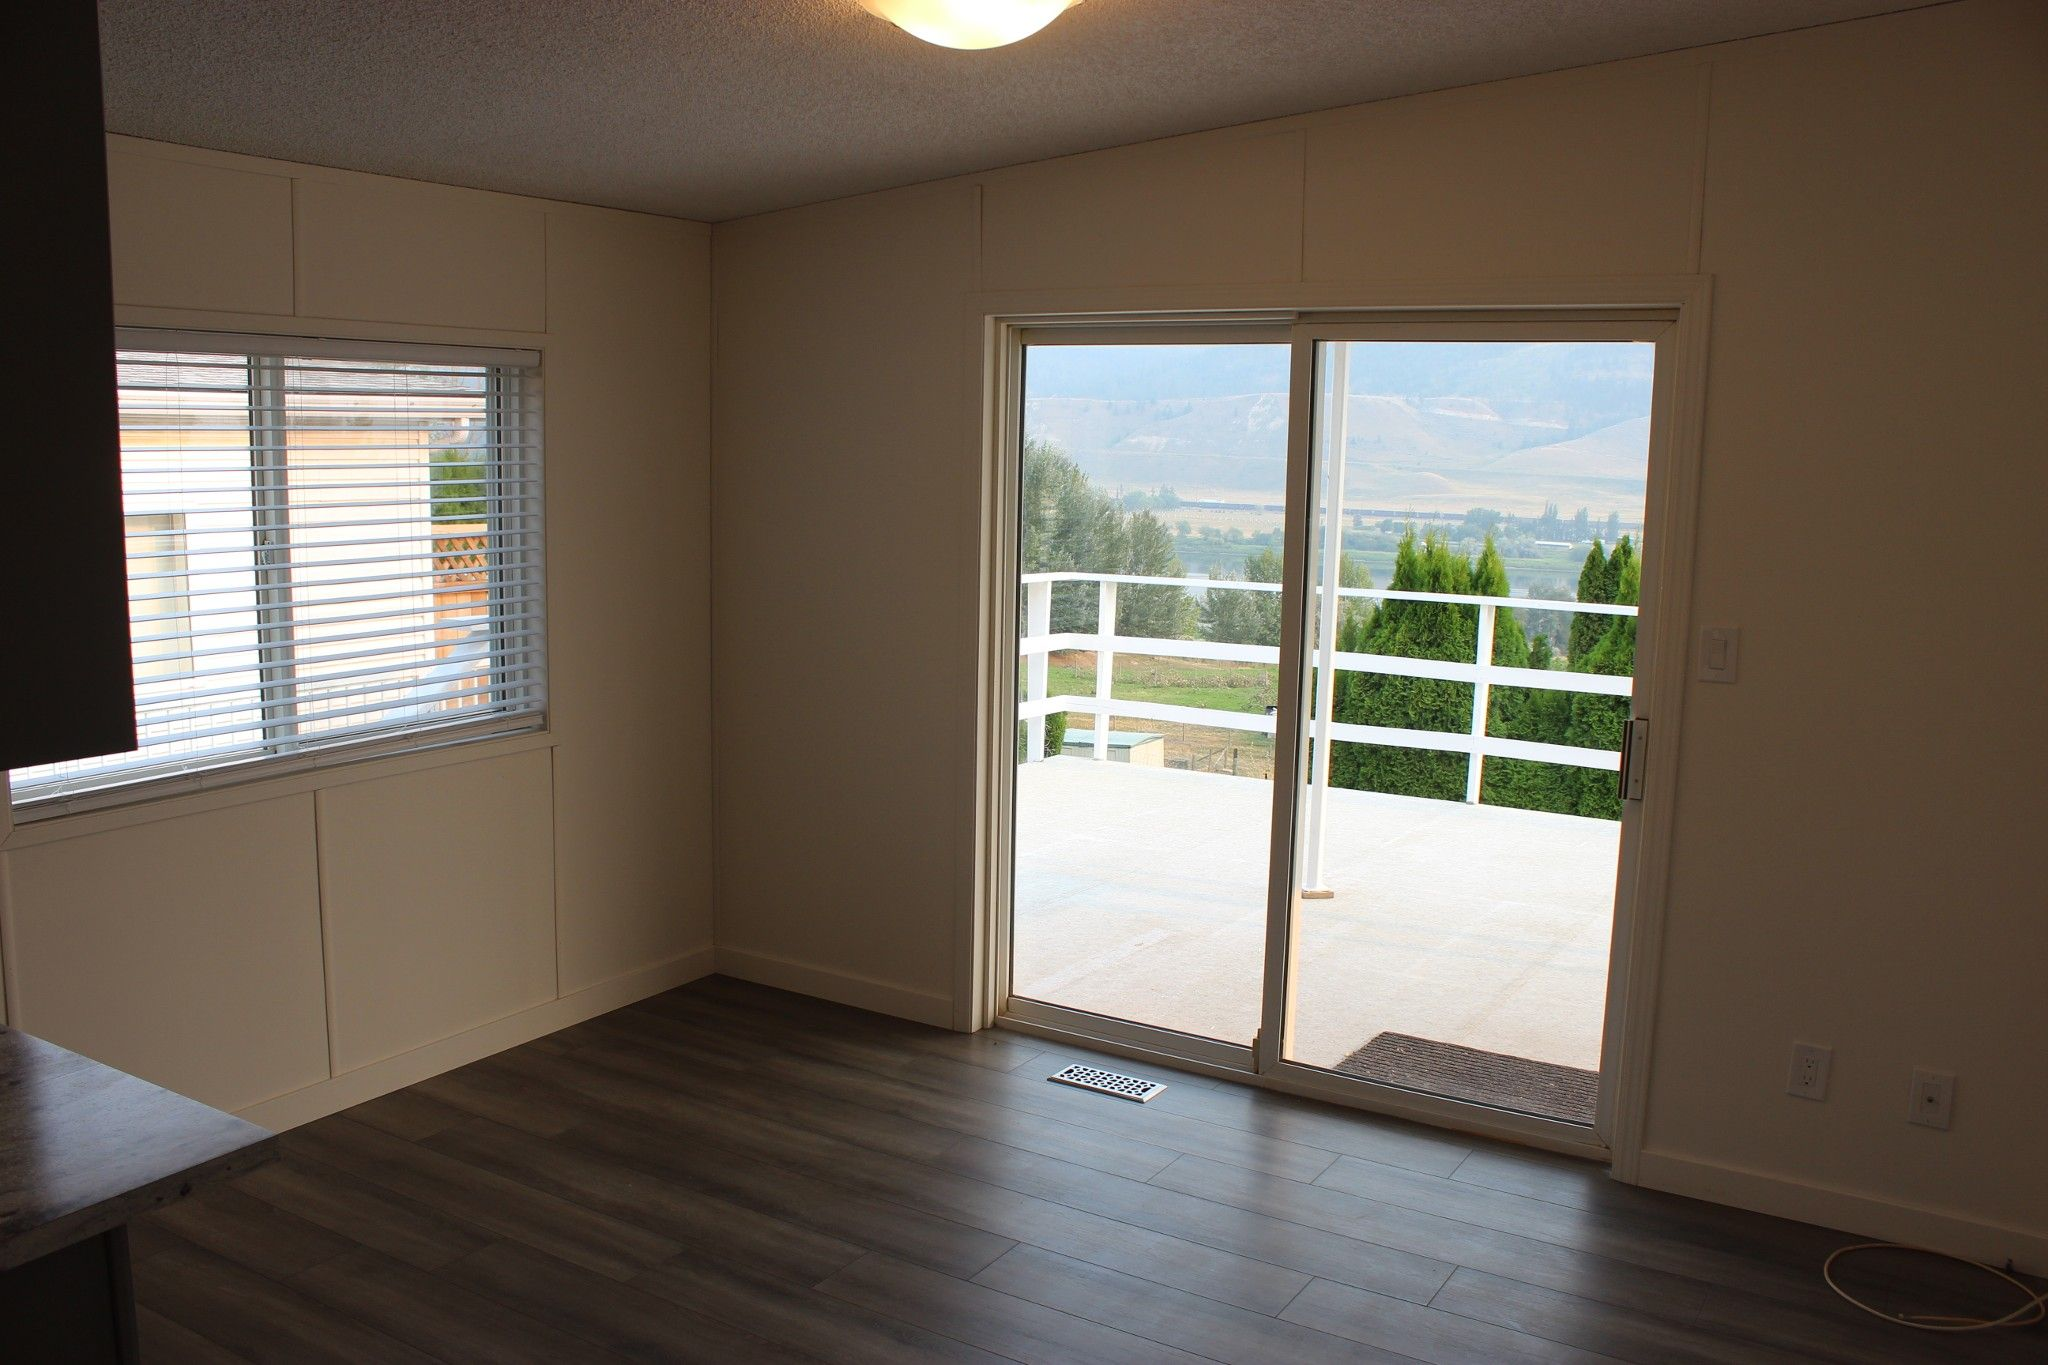 Photo 8: Photos: 22 3099 E Shuswap Road in Kamloops: South Thompson Valley Manufactured Home for sale : MLS®# 147827